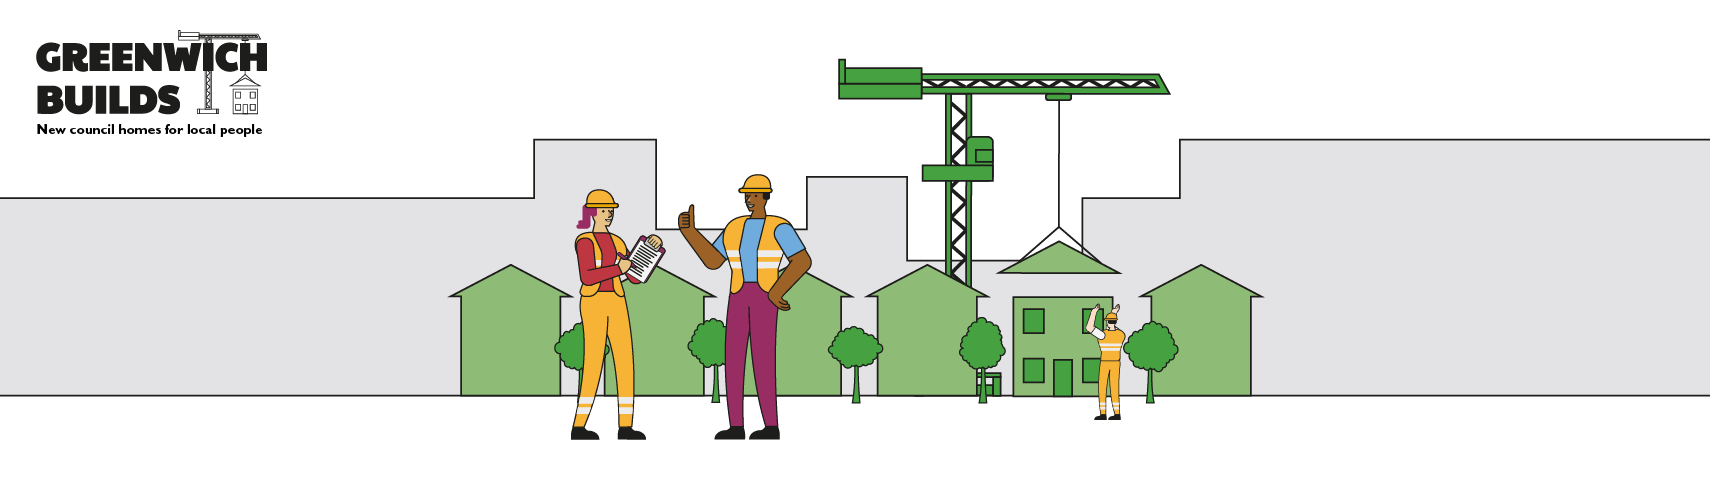 Illustration of a Greenwich Builds construction site